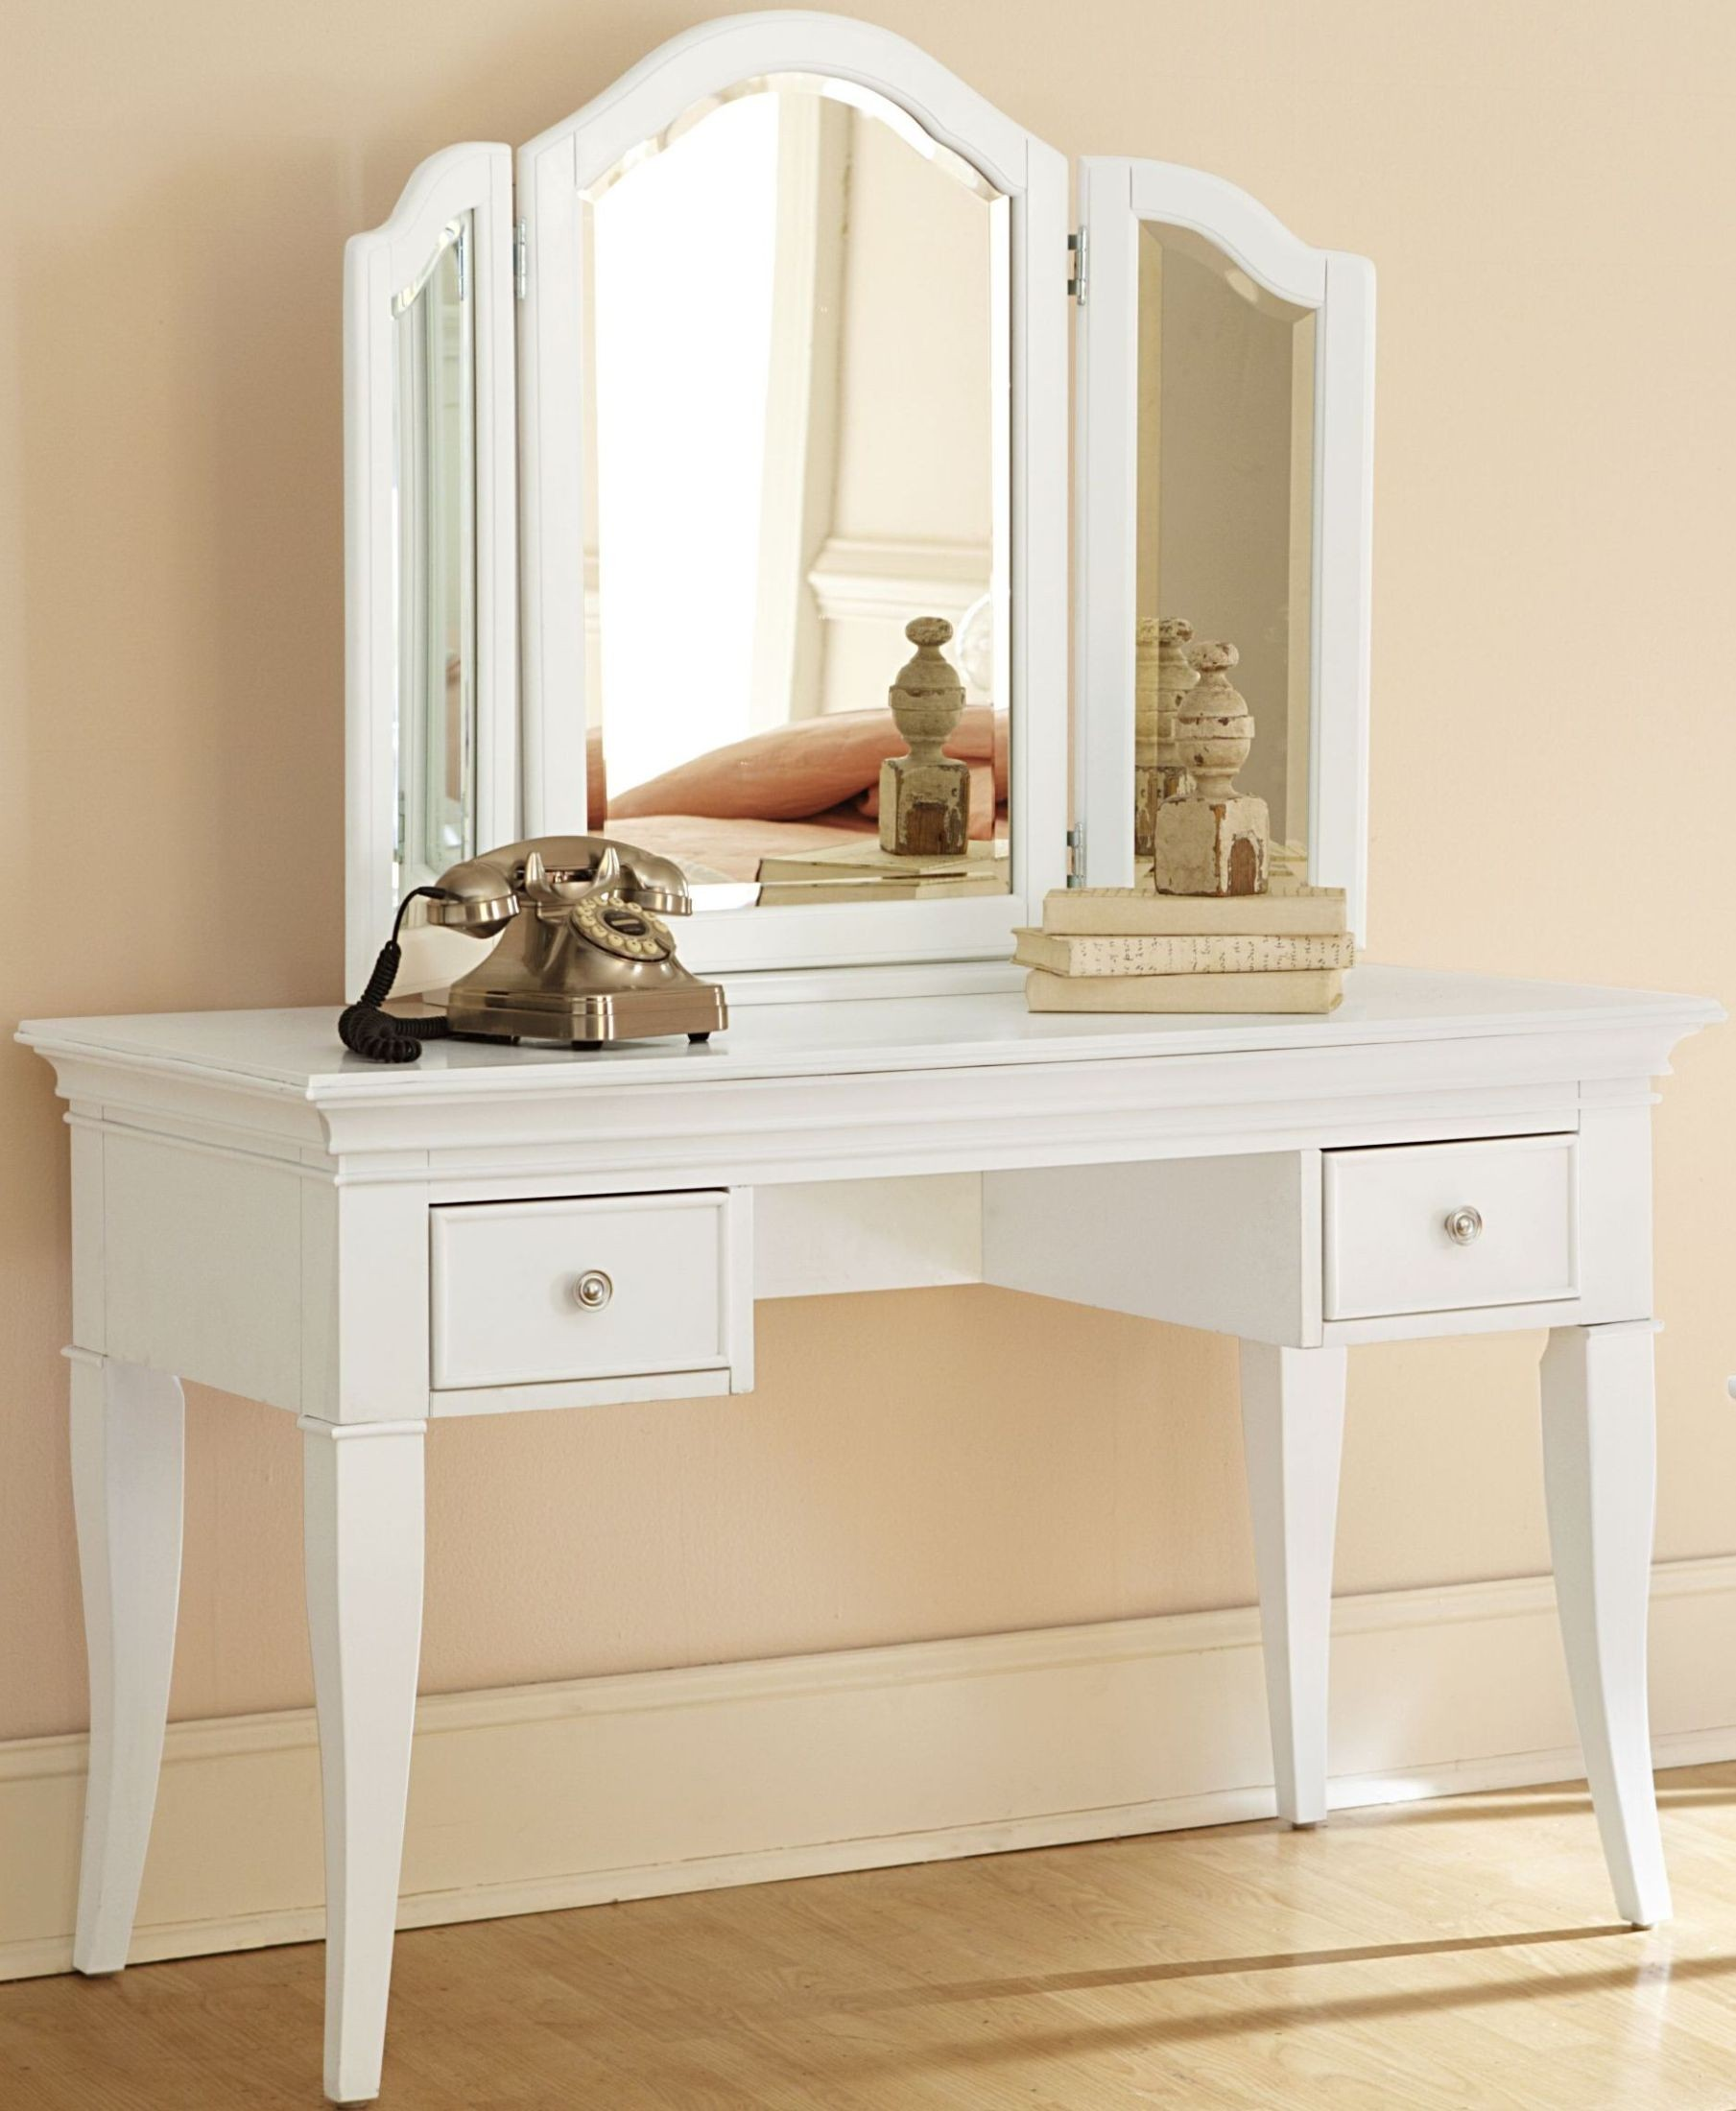 Walnut Street White Desk And Storage Vanity With Mirror